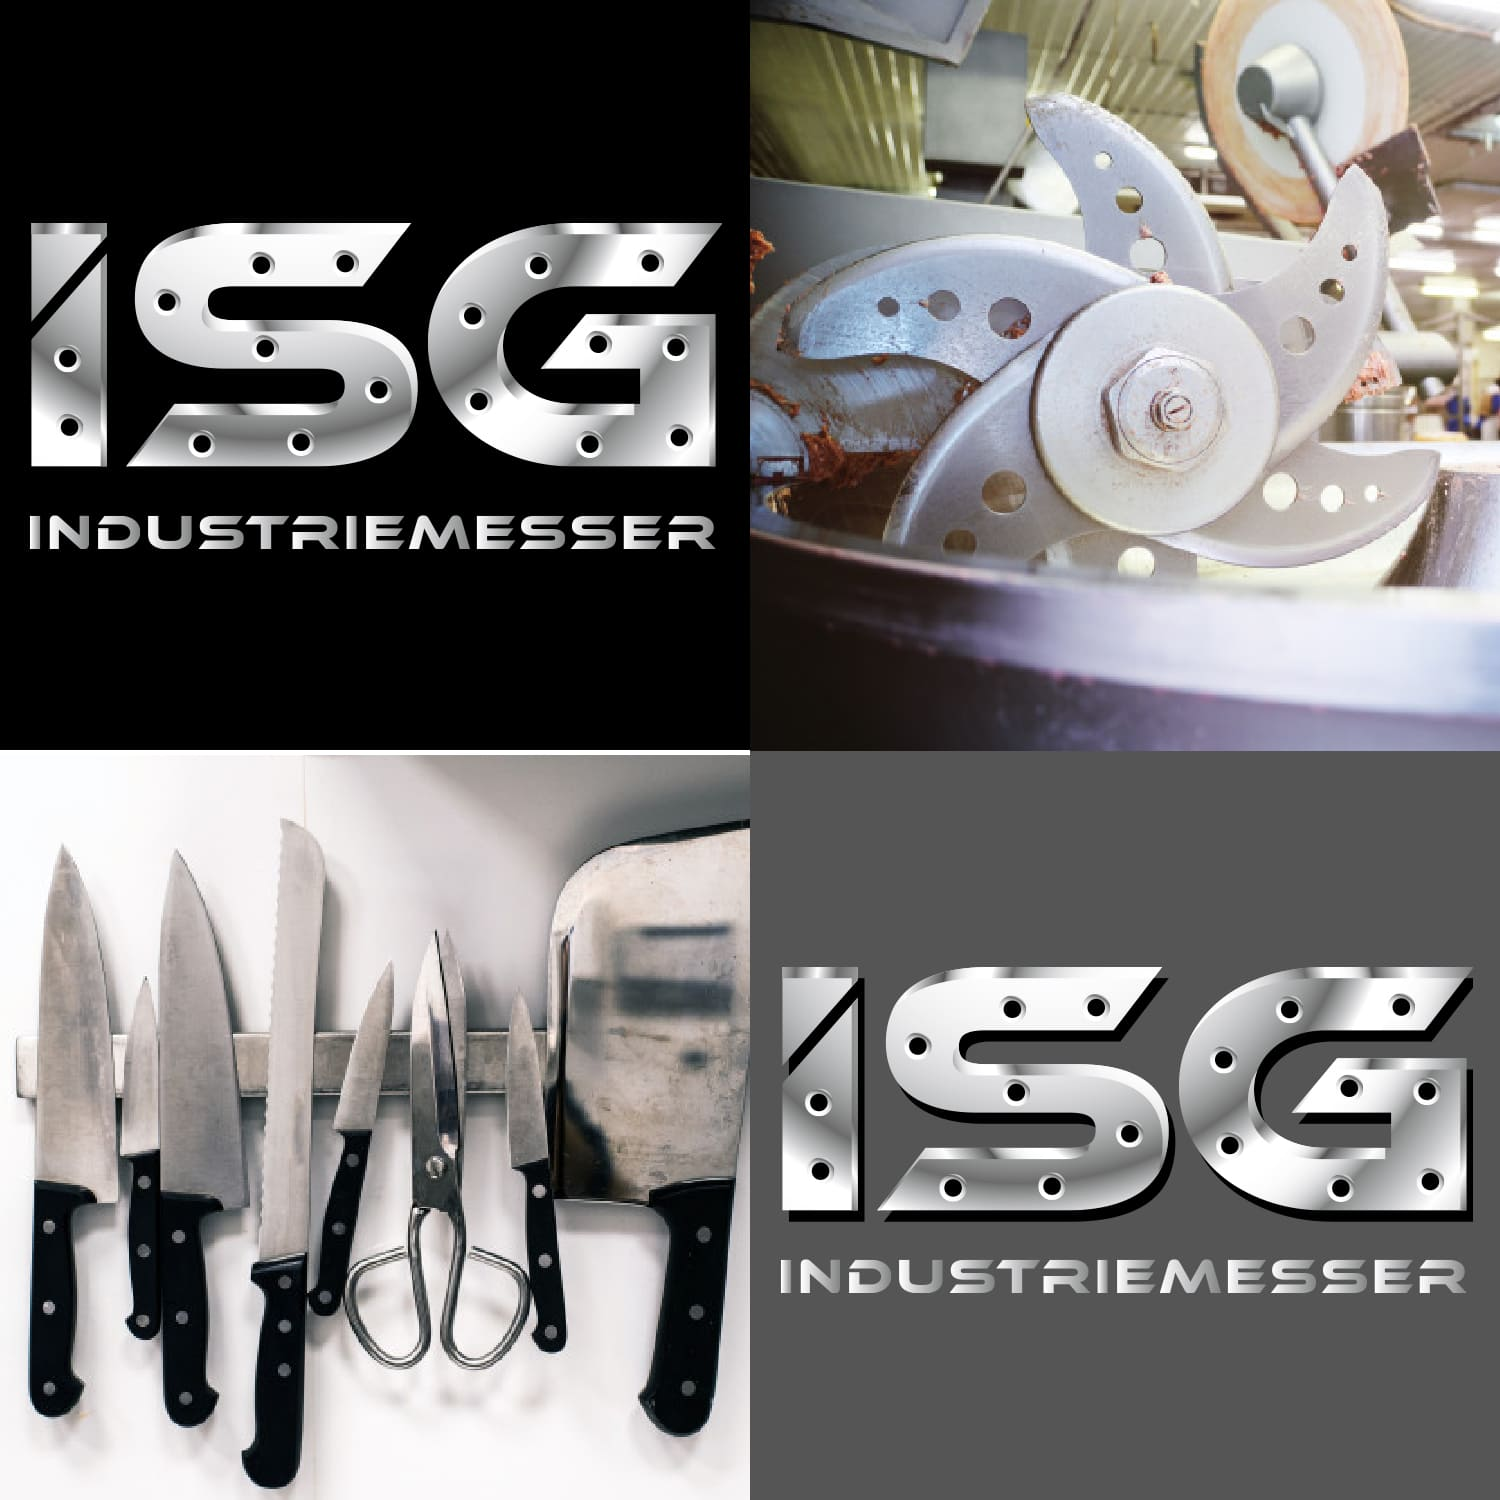 Logodesign ISG Industriemesser in Solingen